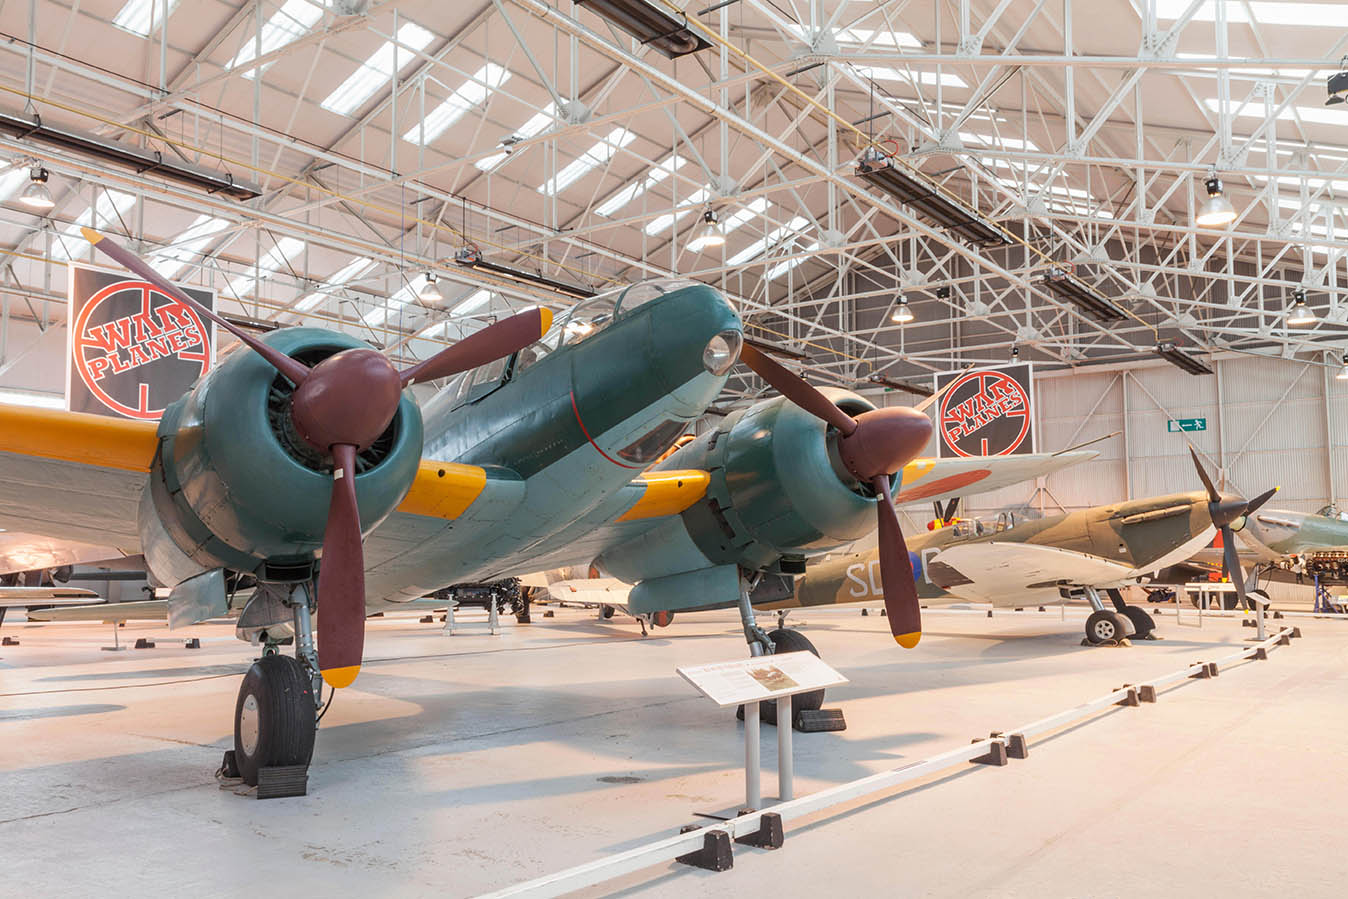 Aircraft at Cosford Museum